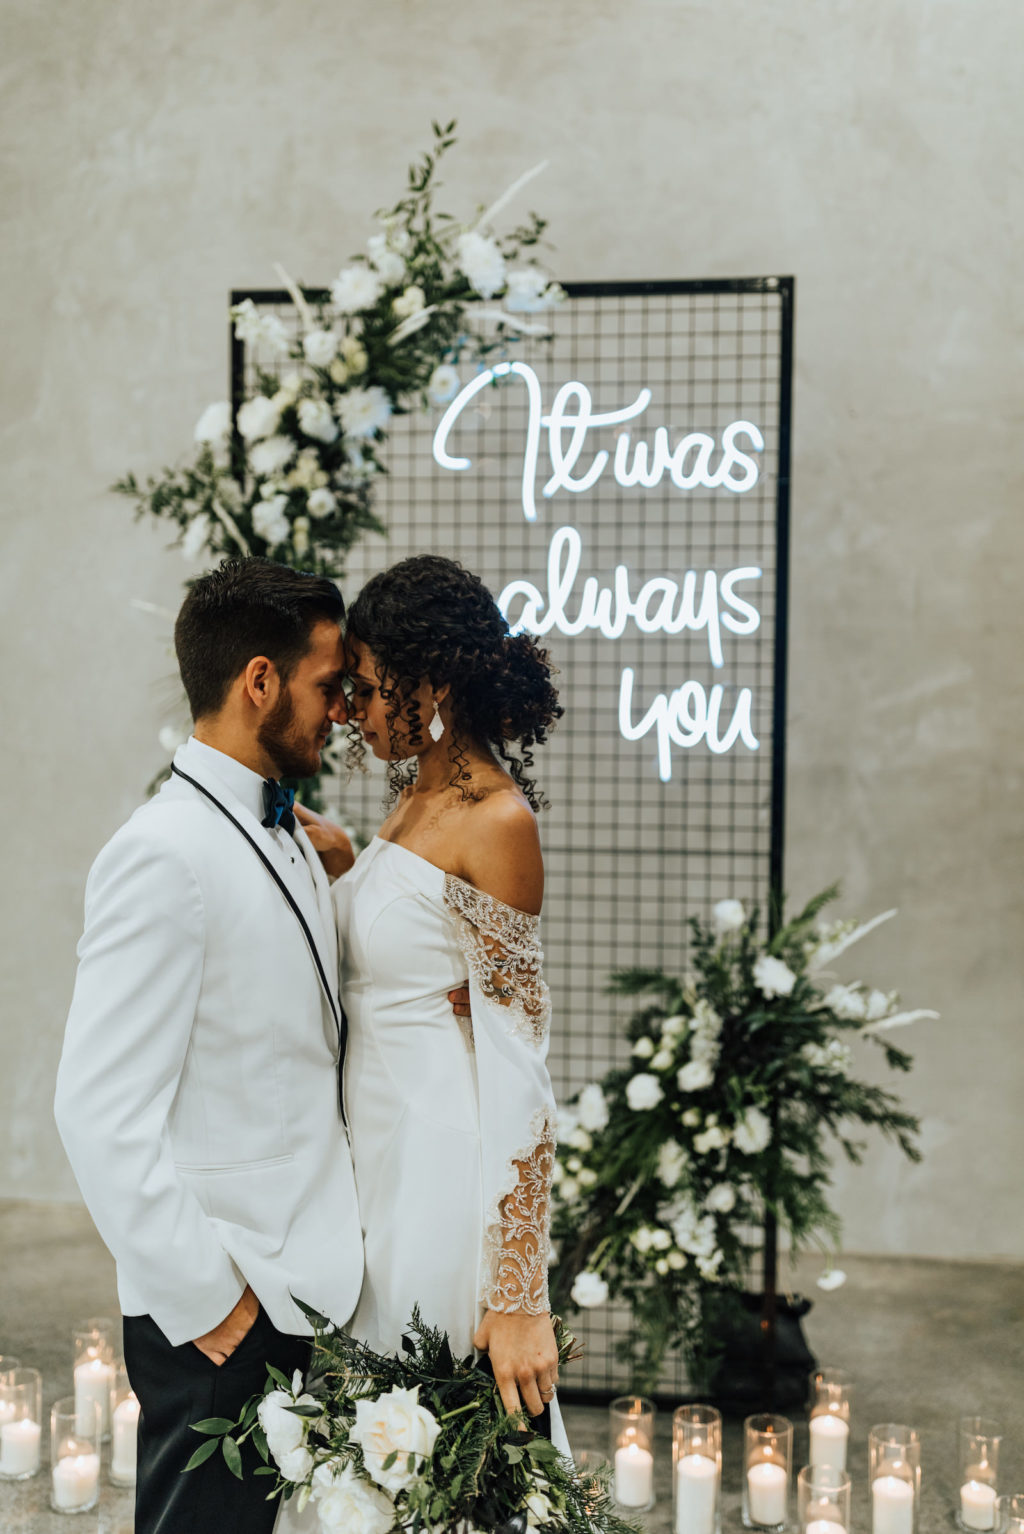 Black Modern Industrial Metal Screen Wedding Ceremony Backdrop Panel with Neon Sign, Candles, and Asymmetrical Floral Arrangements of White Roses and Winter Pine Greenery | Indoor Bride and Groom Portrait | Groom Wearing Classic Formal White Jacket with Black Lapel and Bow Tie | Off the Shoulder Lace Sleeve Sheath Wedding Gown Bridal Dress | Amber McWhorter Photography